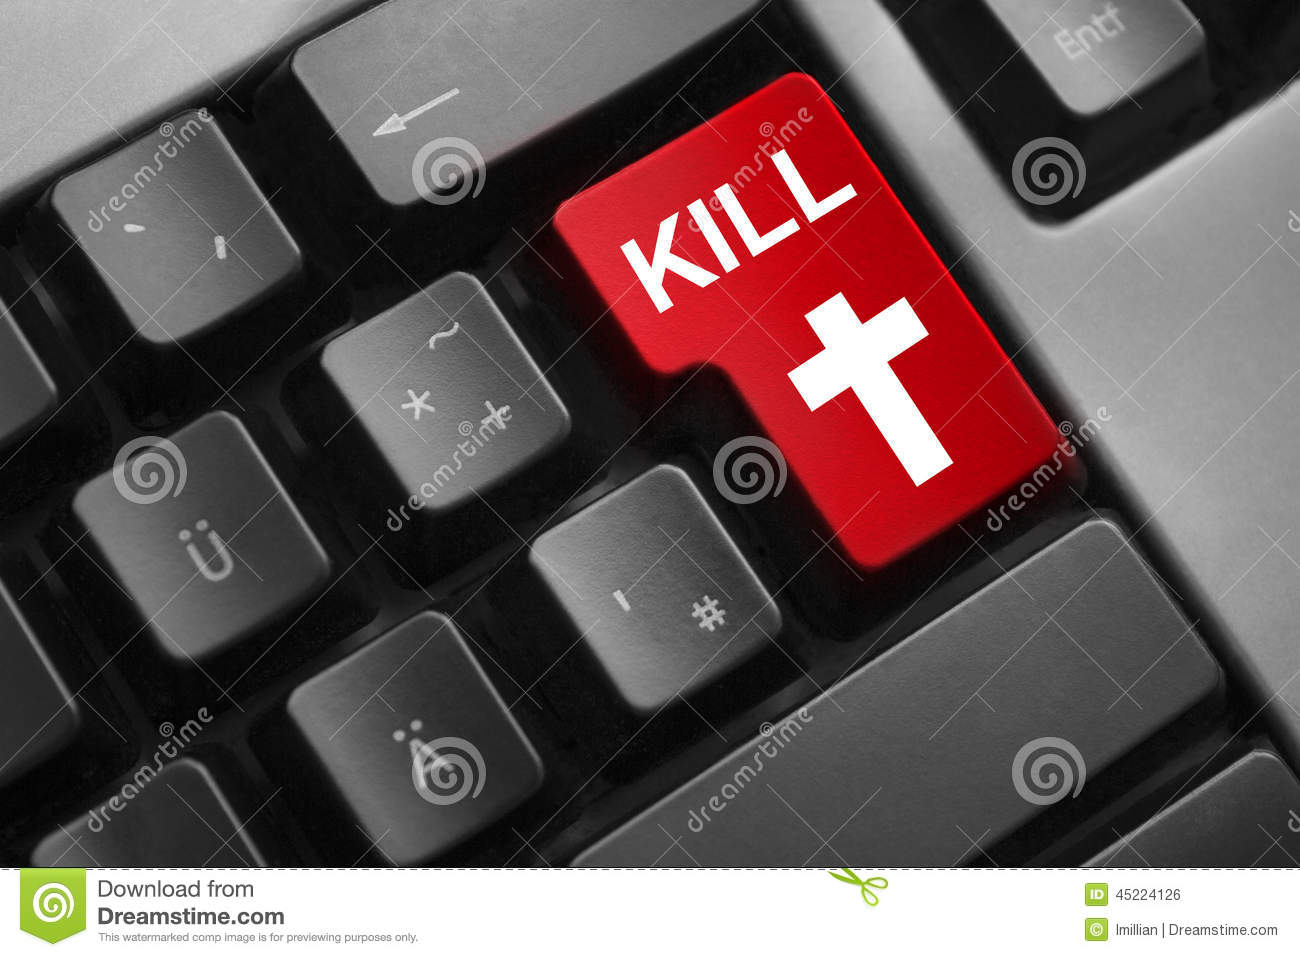 Cross symbol keyboard images symbol and sign ideas keyboard red button kill cross symbol stock photo image 45224126 keyboard red button kill cross symbol buycottarizona